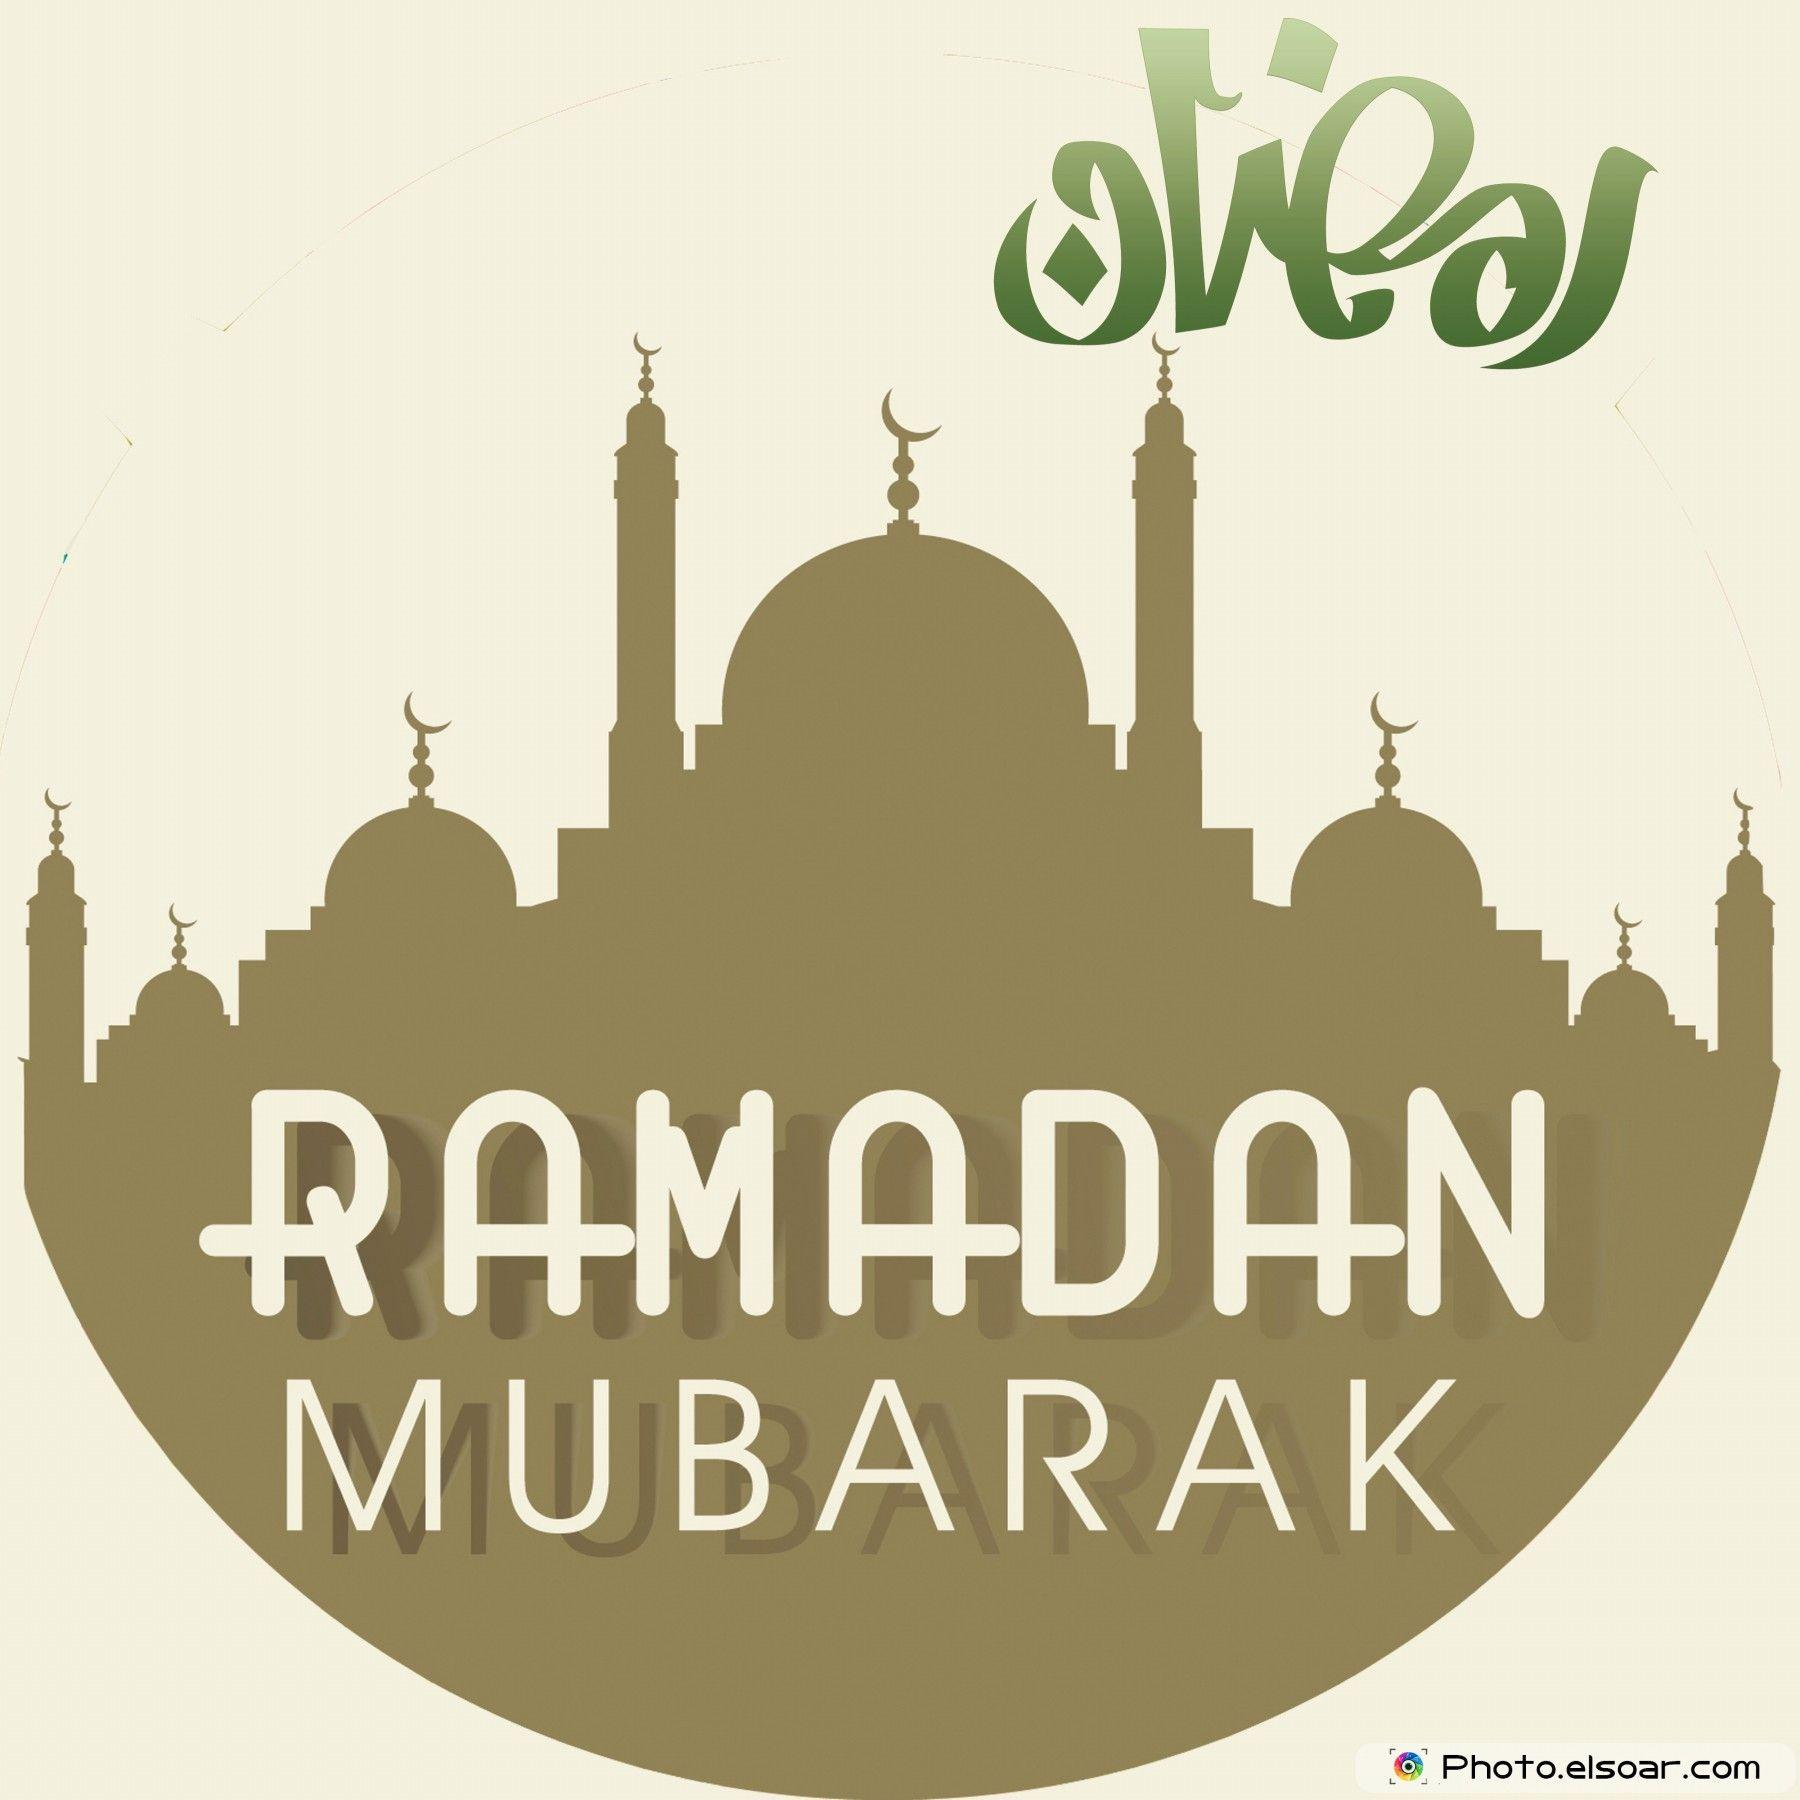 Hd wallpaper ramzan mubarak - Latest Ramadan Mubarak Free Hd Wallpapers Elsoar